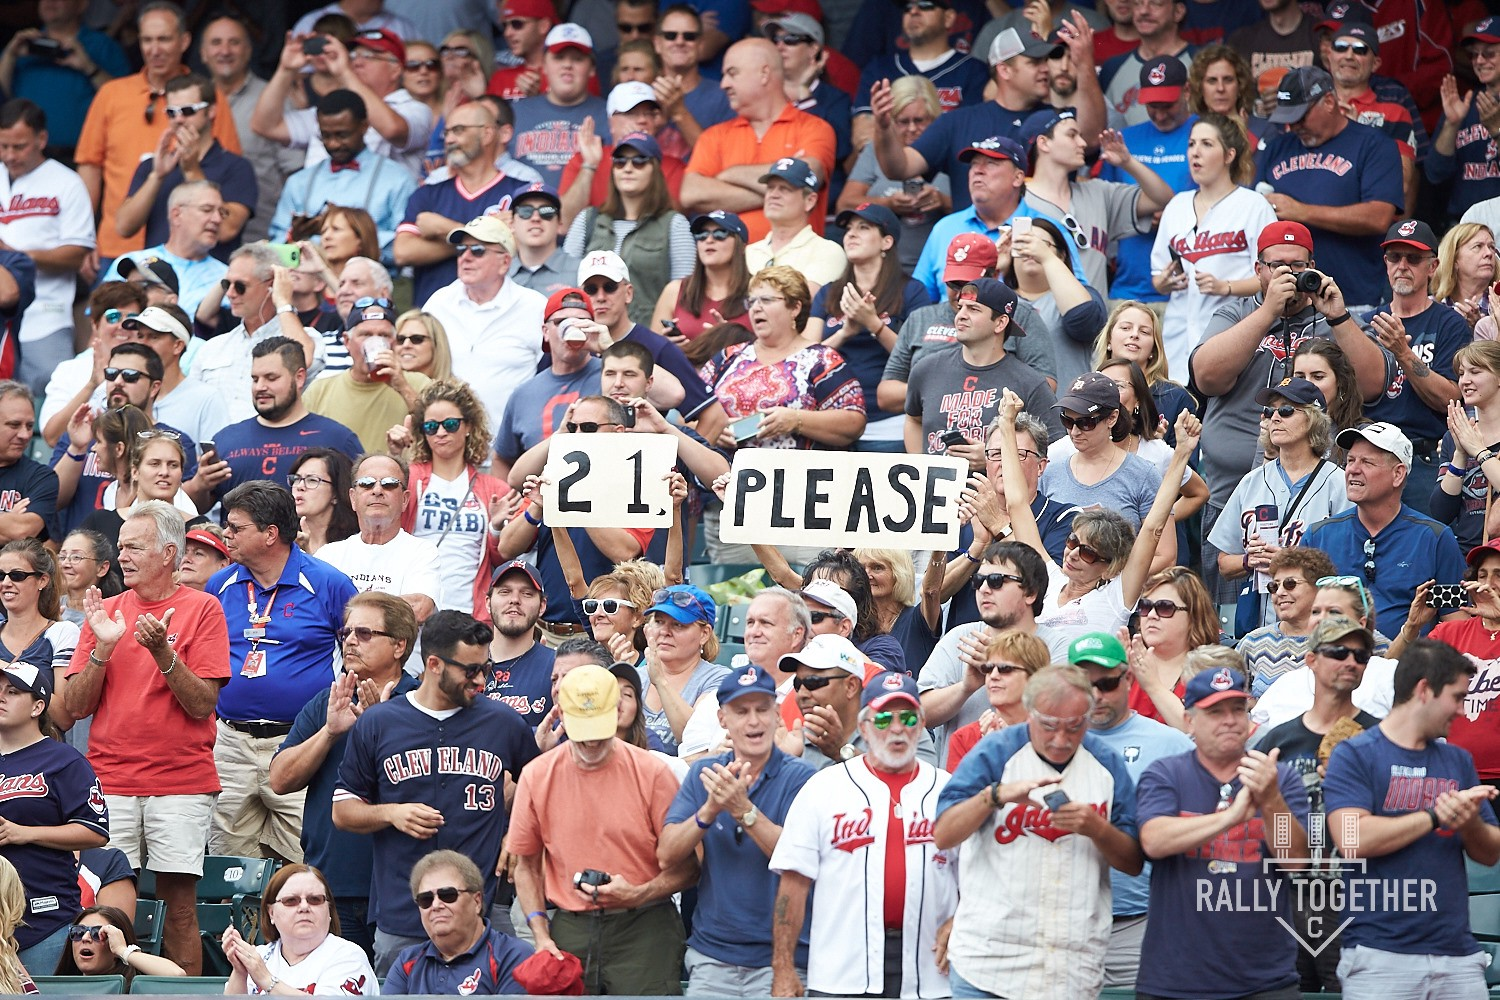 Cleveland Indians, iHeartMedia Cleveland reach multi-year